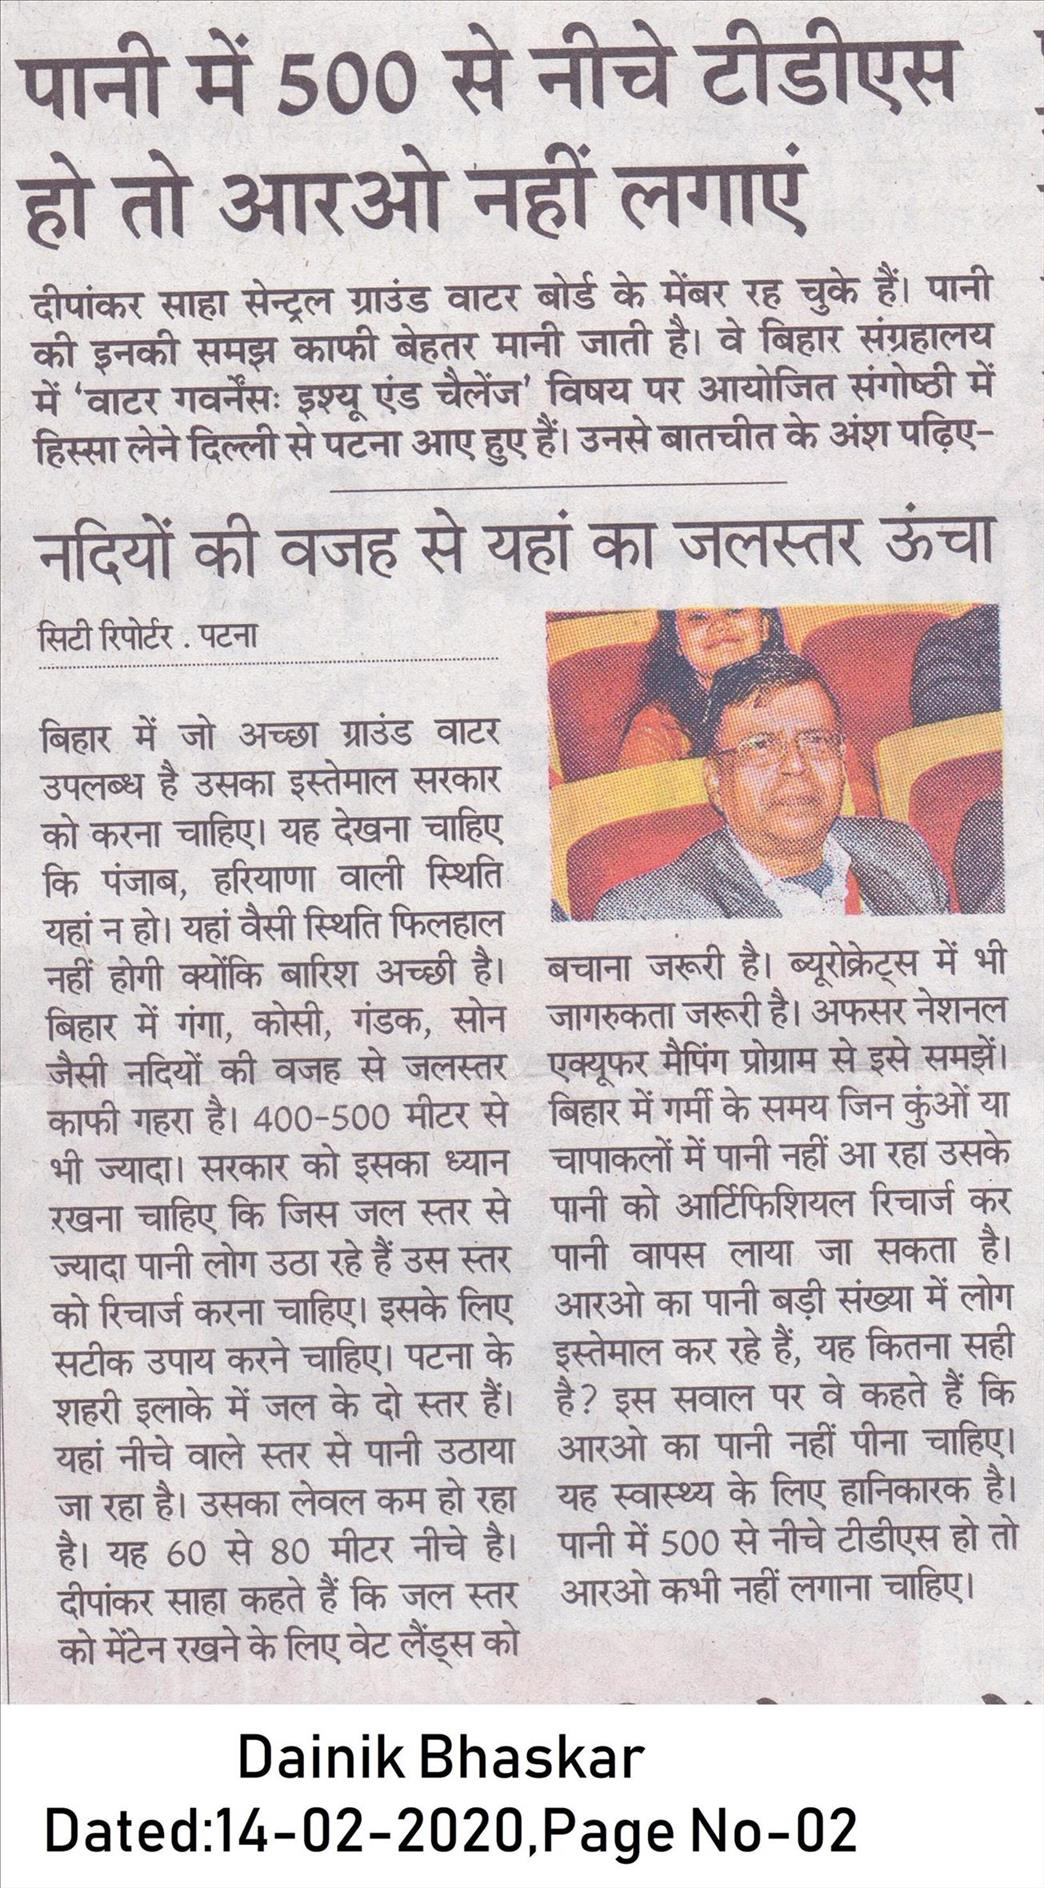 Dainik Bhaskar(City Bhaskar)Dated 14-02-20, Page No-02